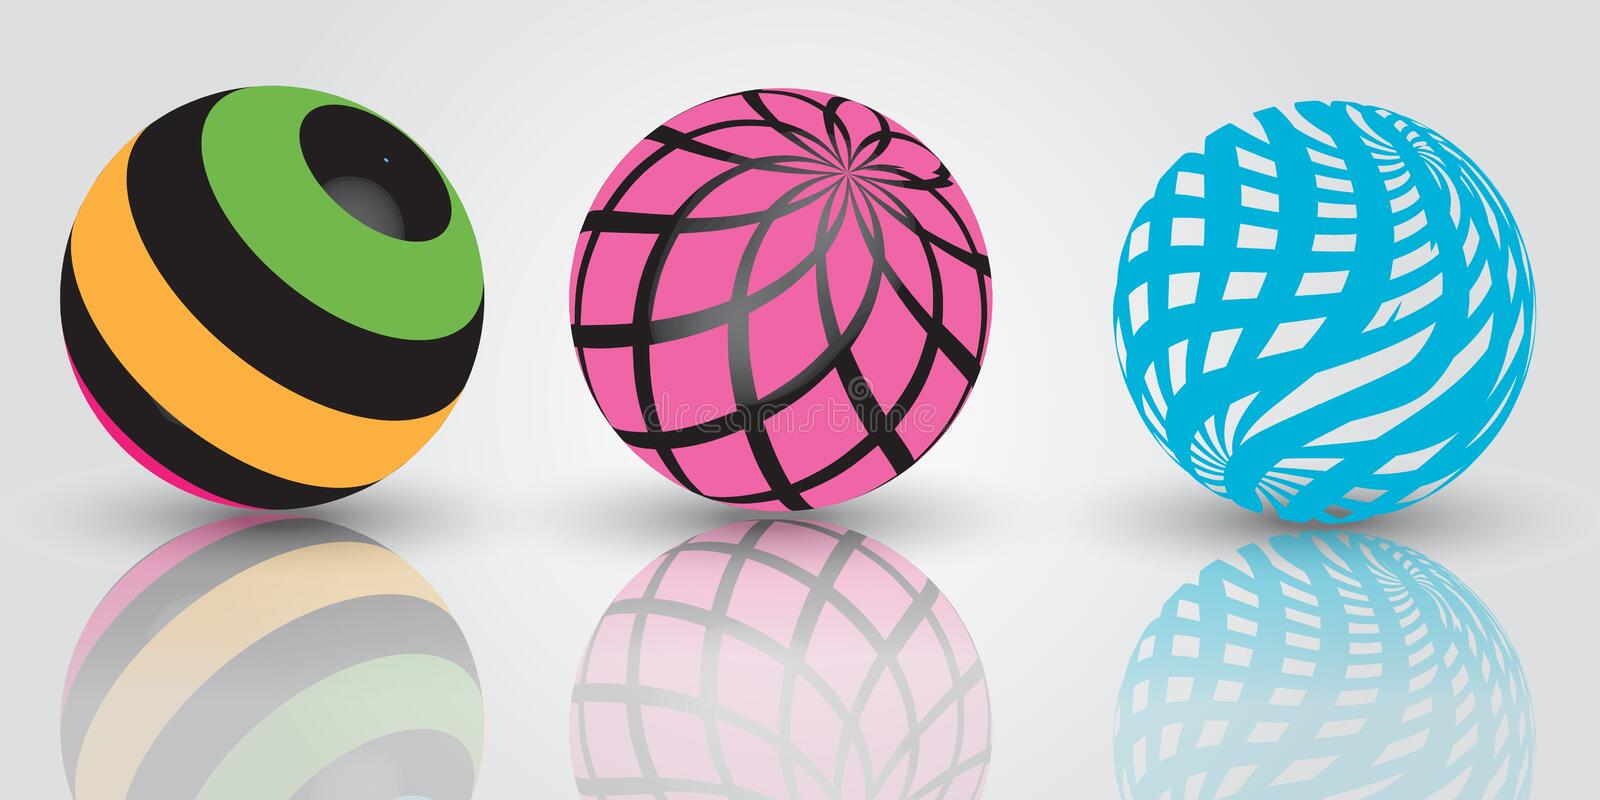 Download 3d balls stock vector. Image of logo, planet, image, graphic - 15251365